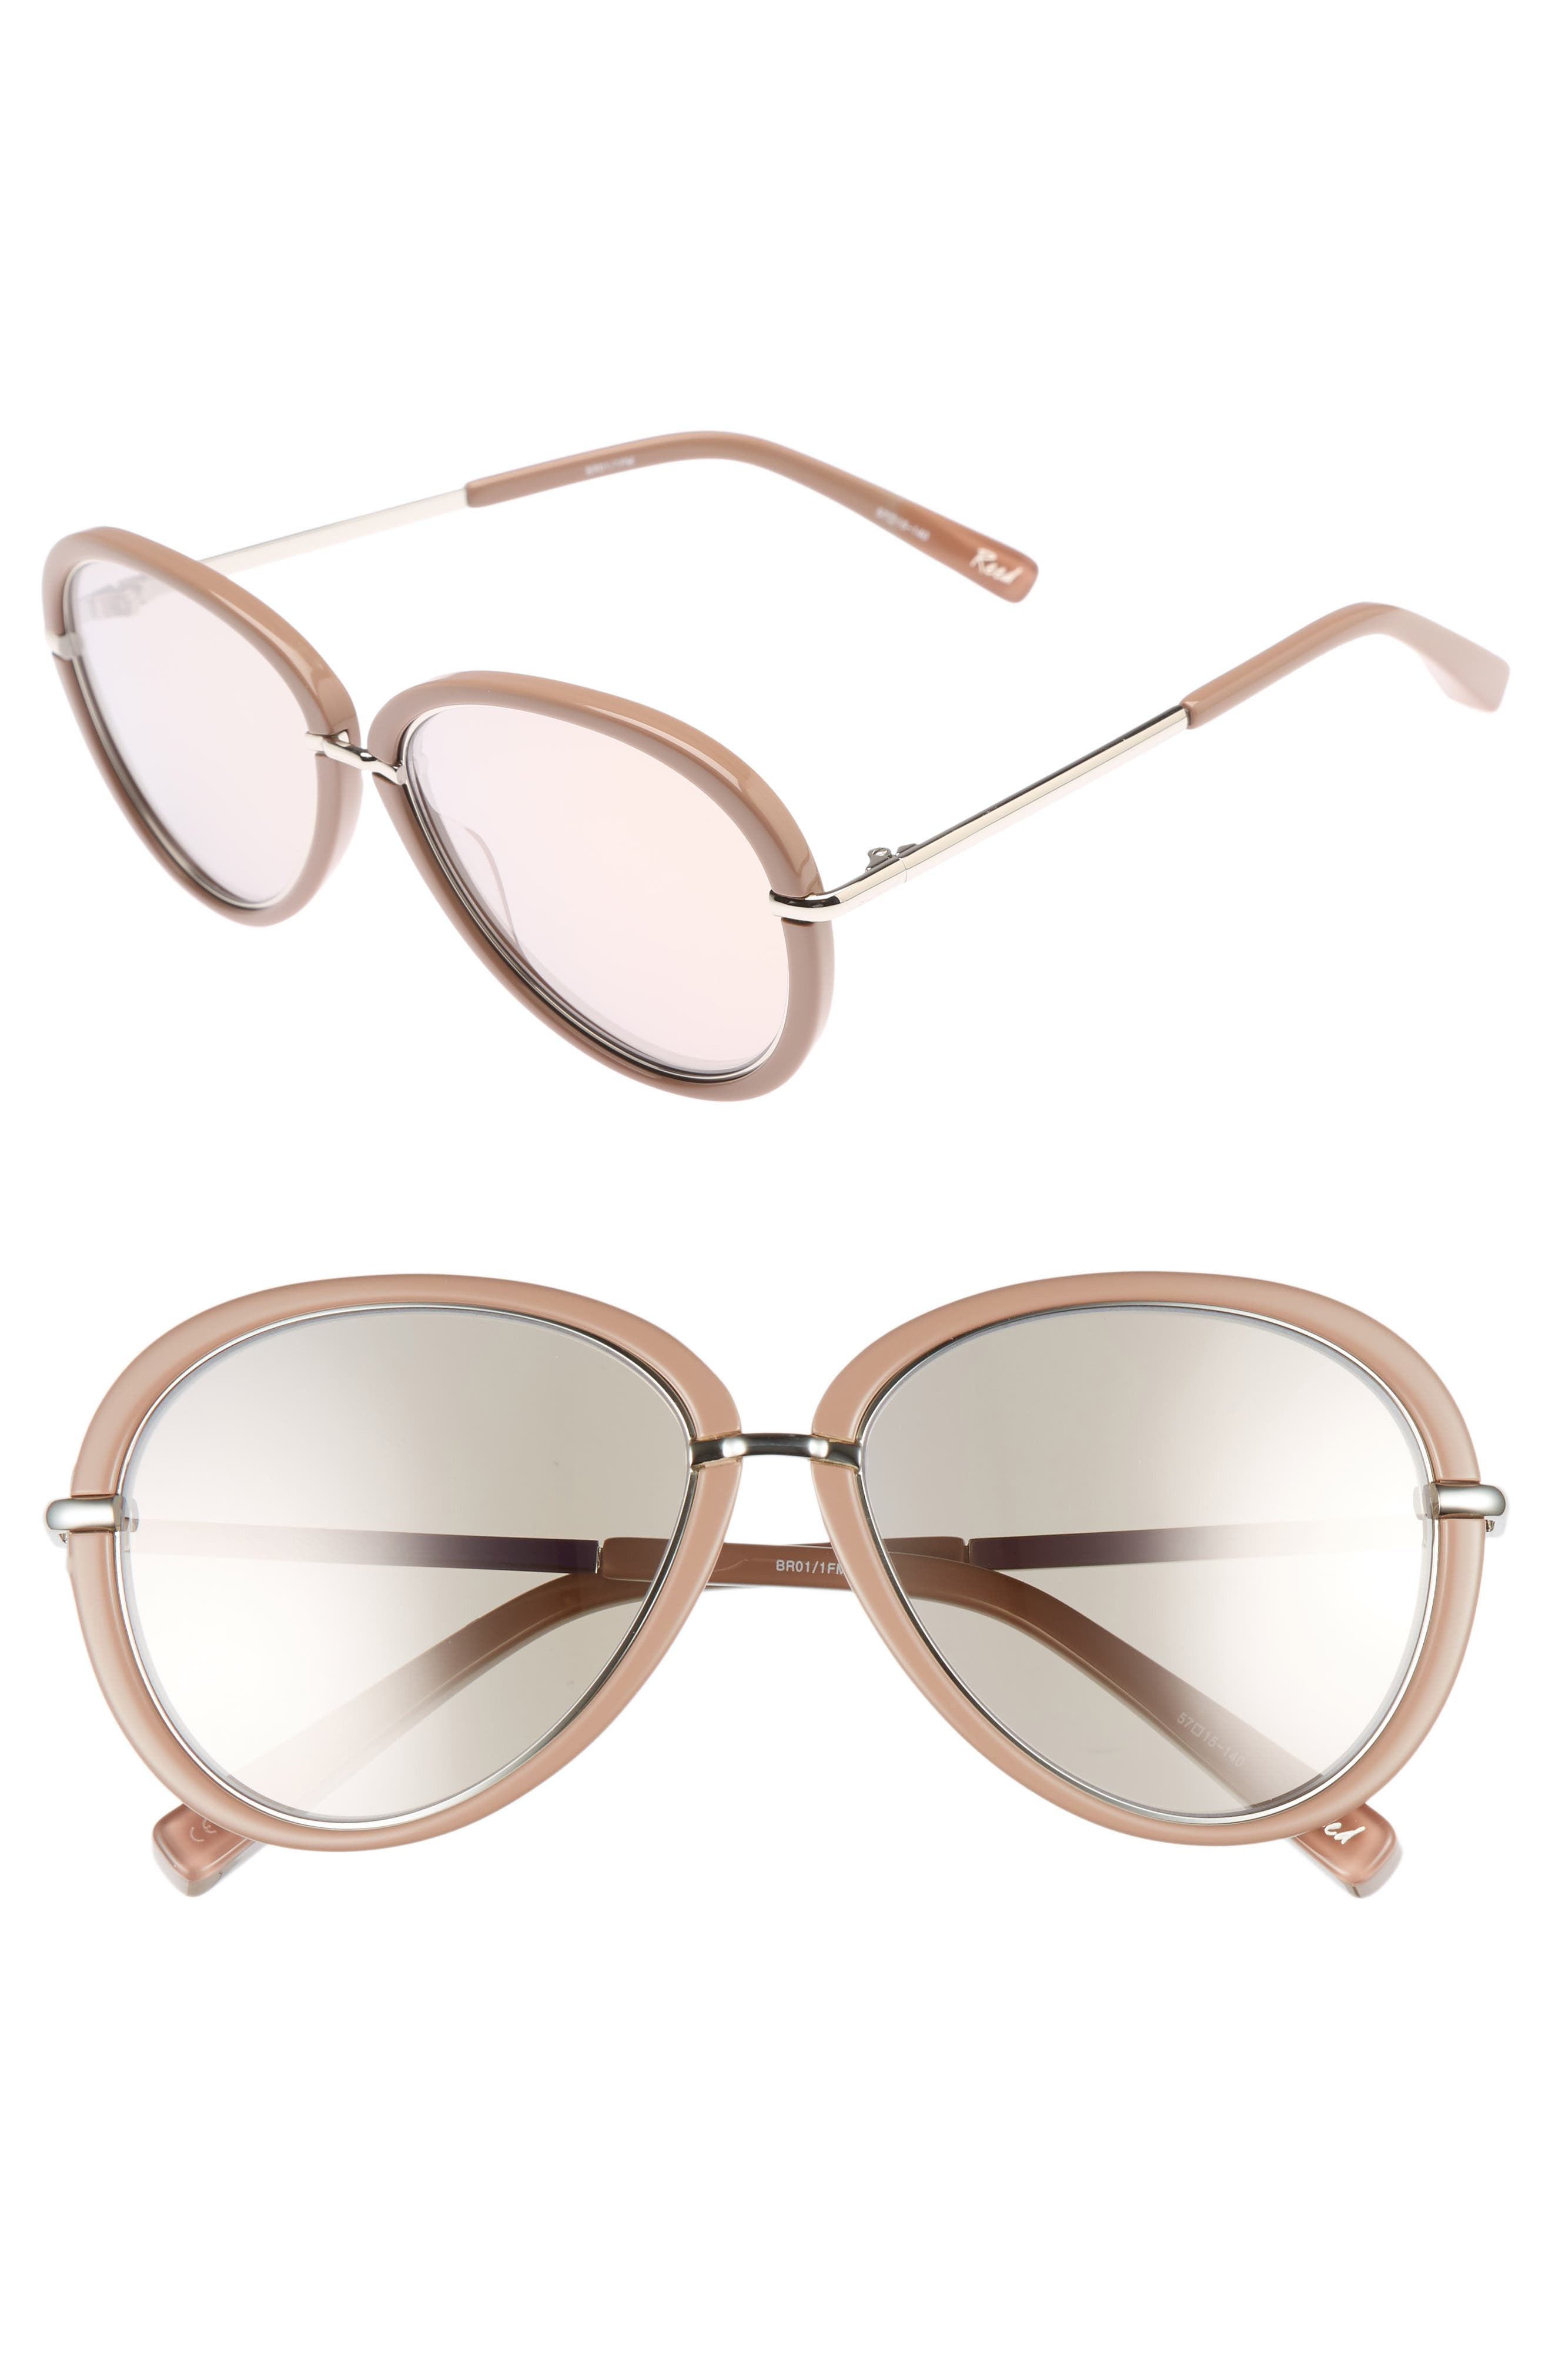 Alternate Image 1 Selected - Elizabeth and James Reed 57mm Aviator Sunglasses